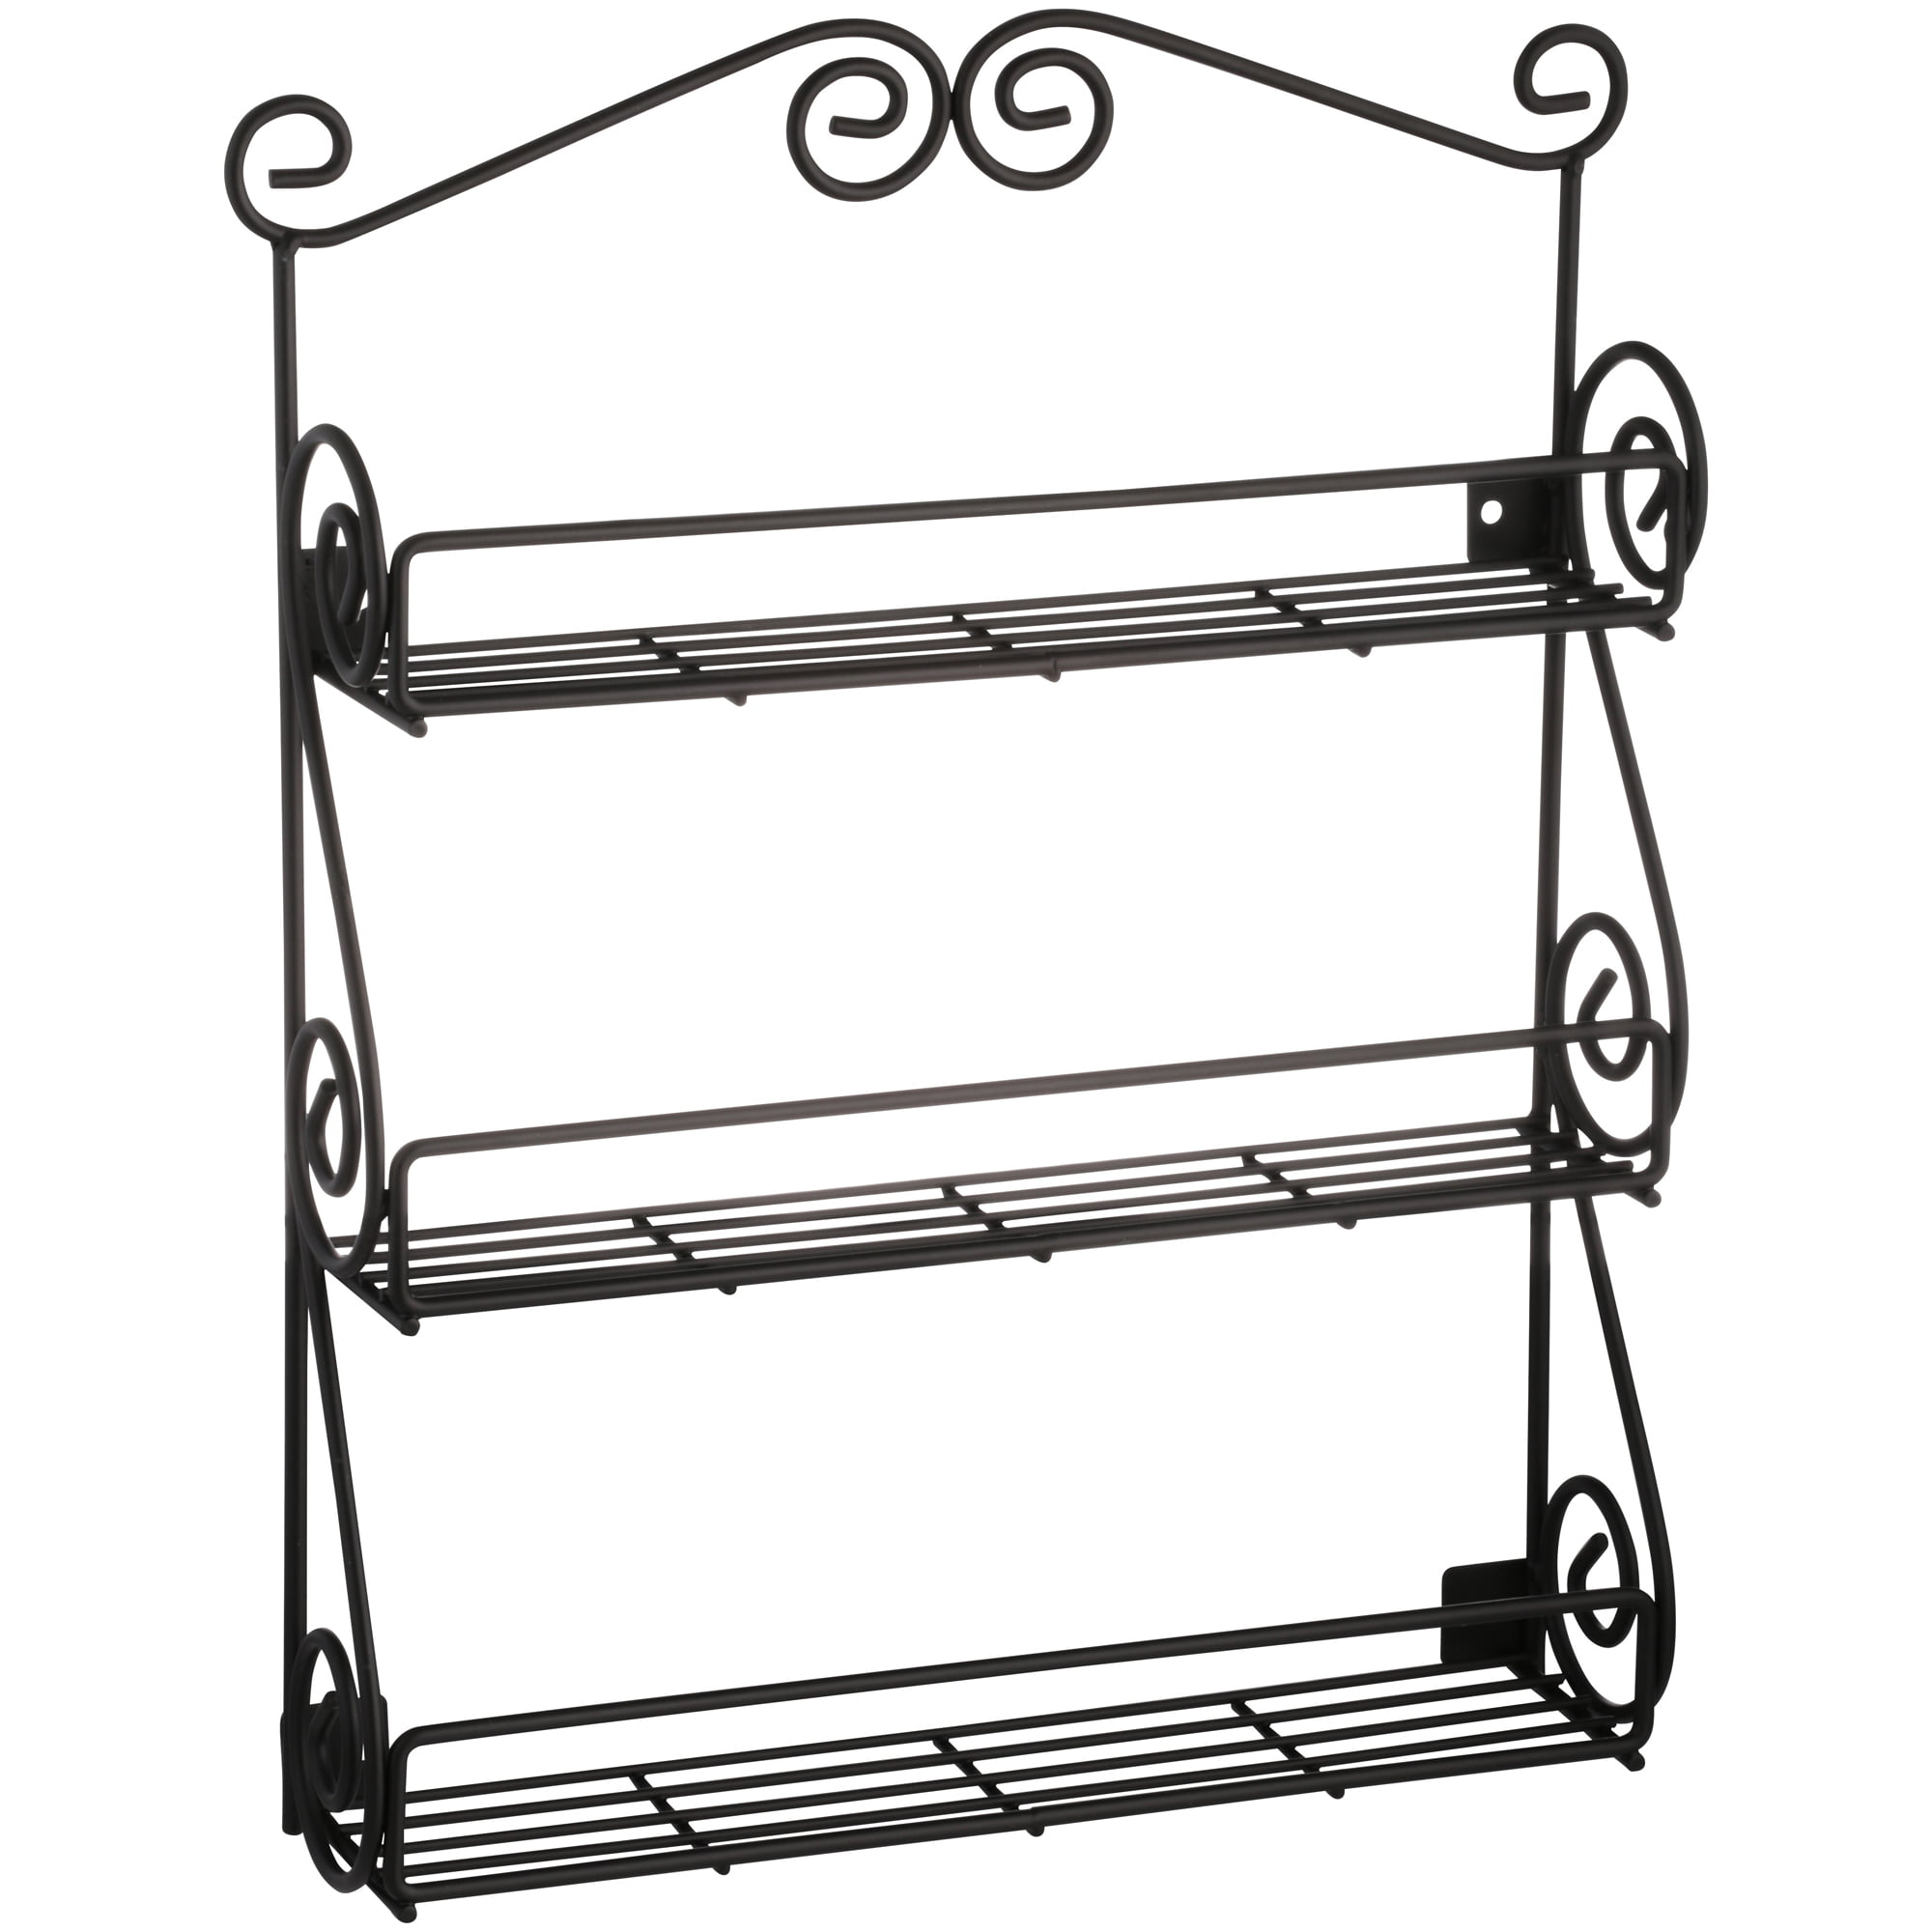 Image of: Spectrum Diversified Scroll Wall Mounted Spice Rack Traditional Spice Rack Organizer For Cabinet Kitchen Beauty Nail Polish Organizer For Bathroom Walmart Com Walmart Com